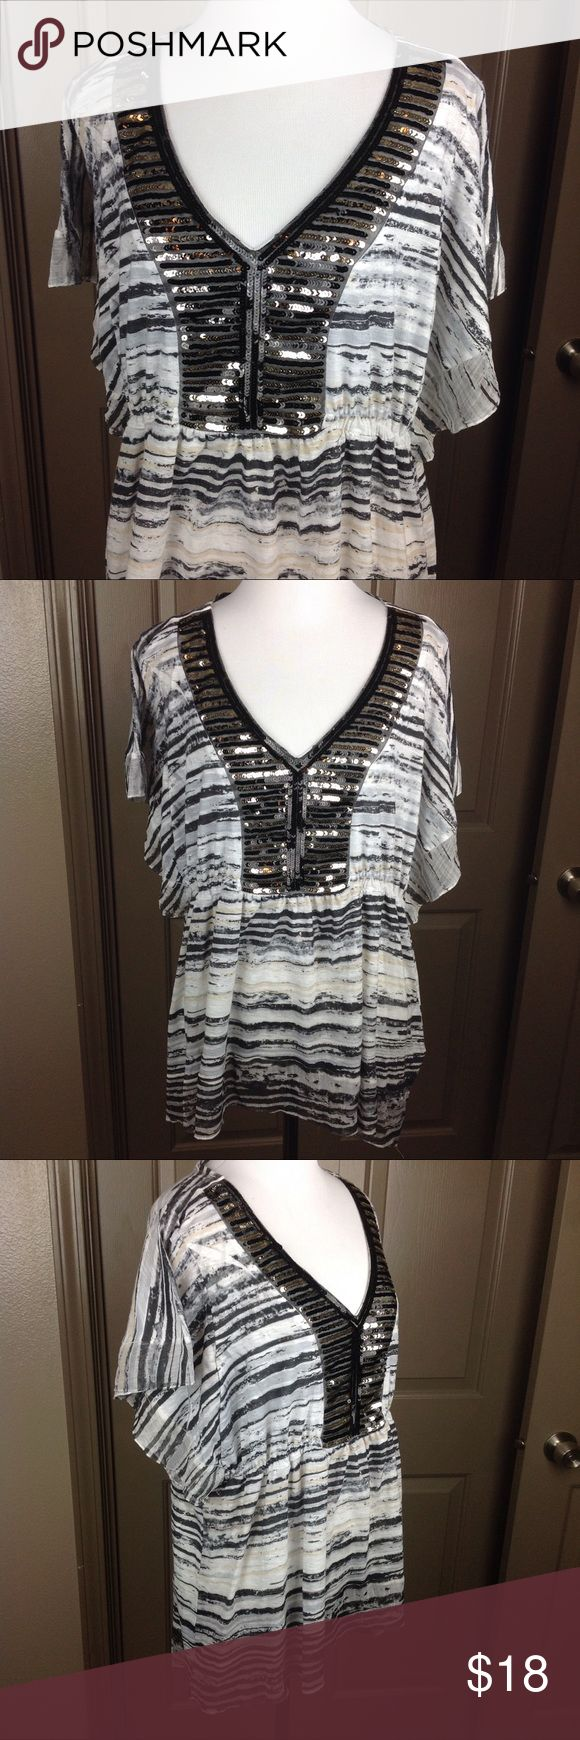 Unity World Wear Top 1X Batwing Stripey Sequined Great Condition Unity World Wear Top 1X Batwing short sleeve Striped grey/black with black/gold Sequins polyester 29 inch length approx 22 inch across bust Unity World Wear Tops Blouses